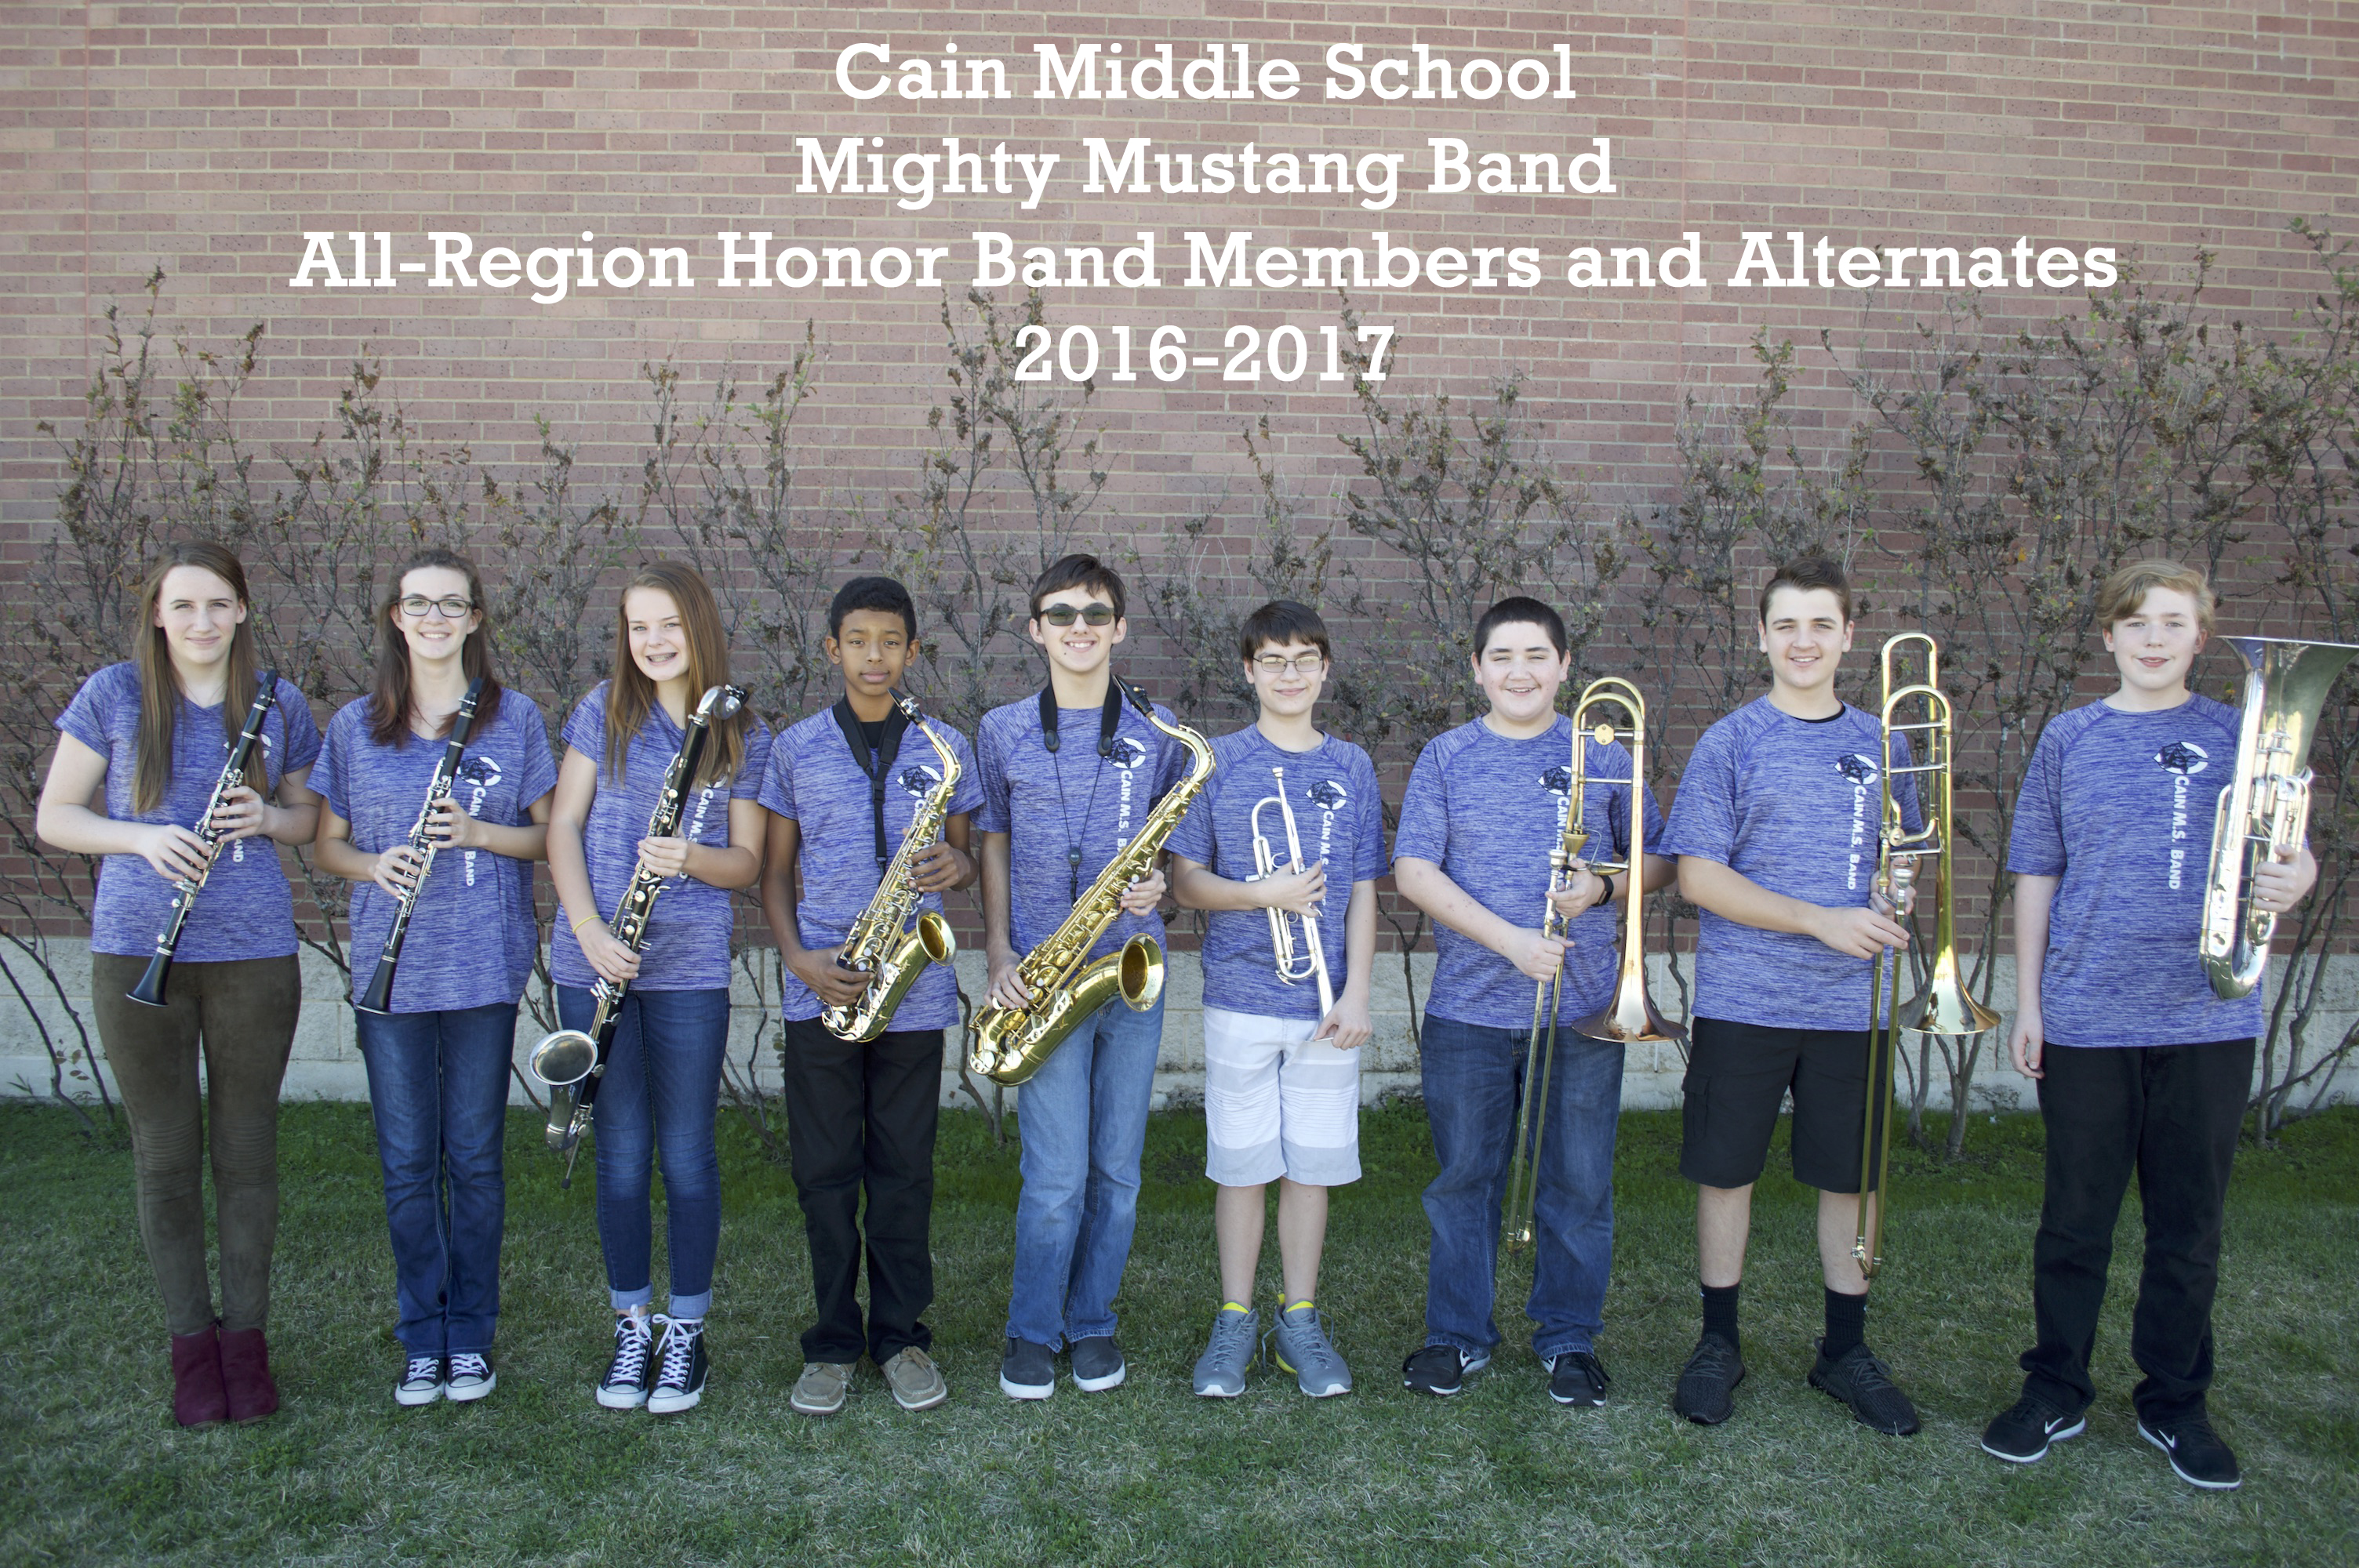 Cain MS All-Region Band Members 2016